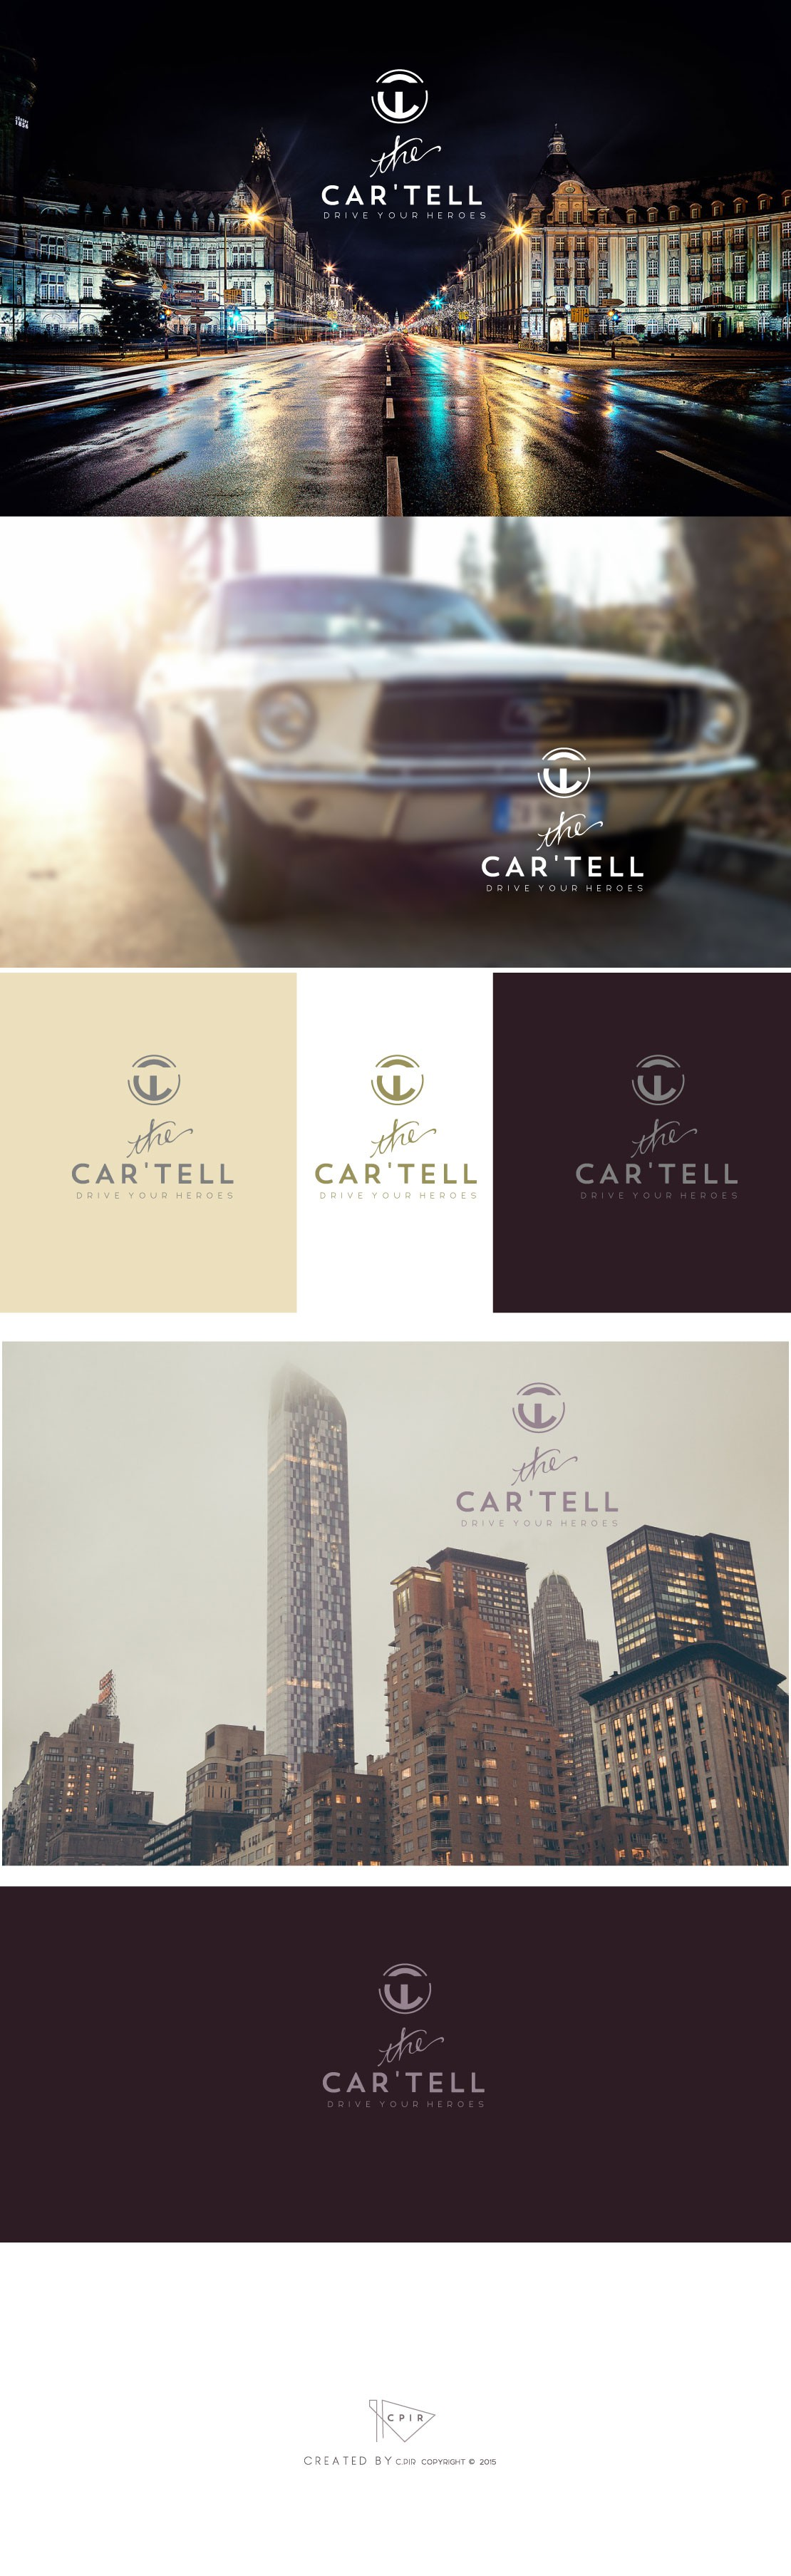 Create a great company logo for Luxembourg's finest Classic Car Club - The Car'tell